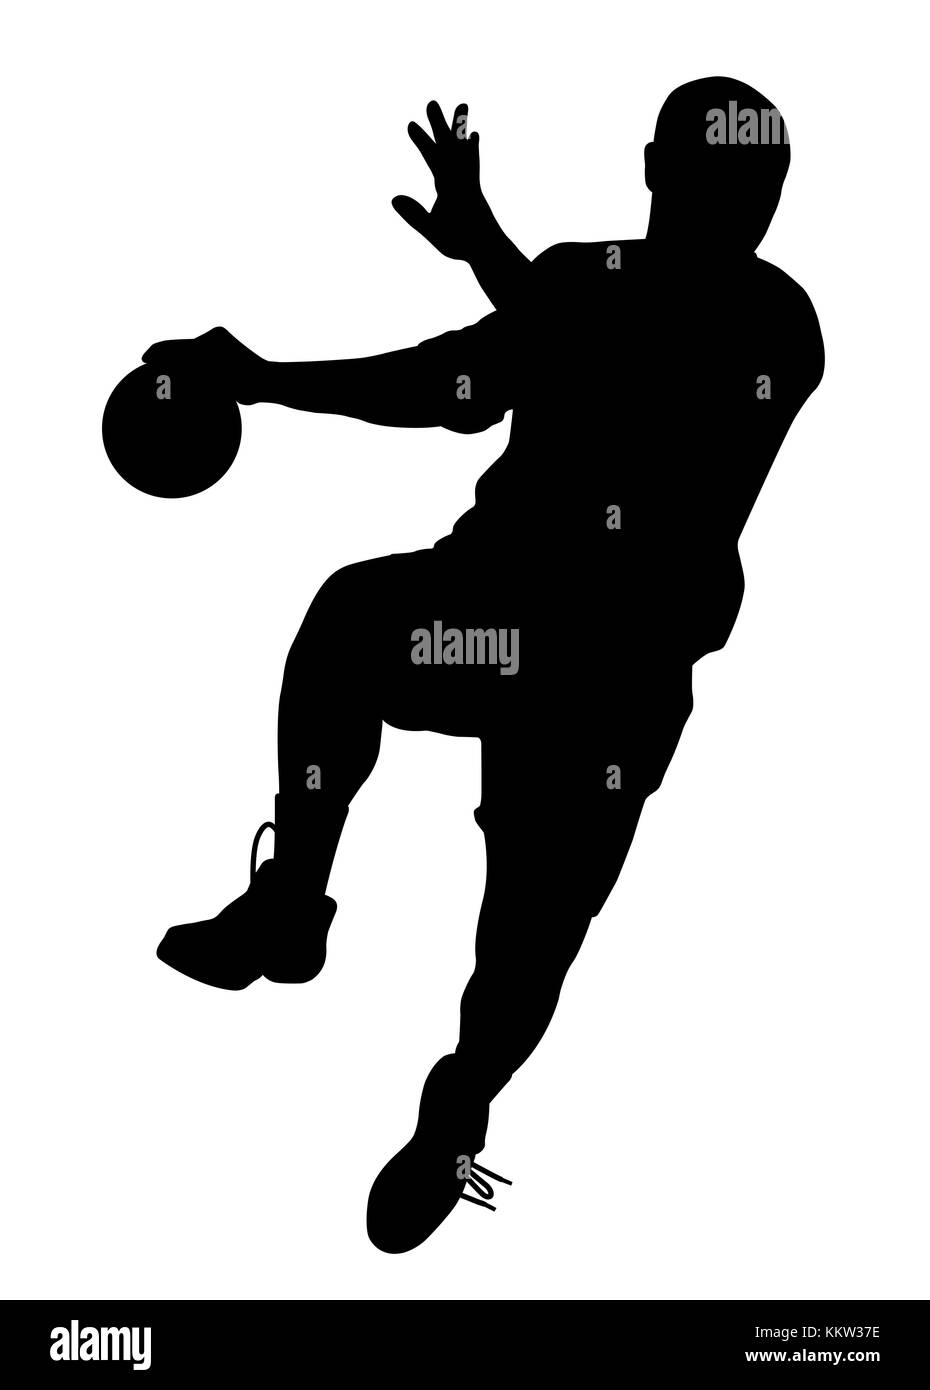 https www alamy com stock image male handball player 167123138 html